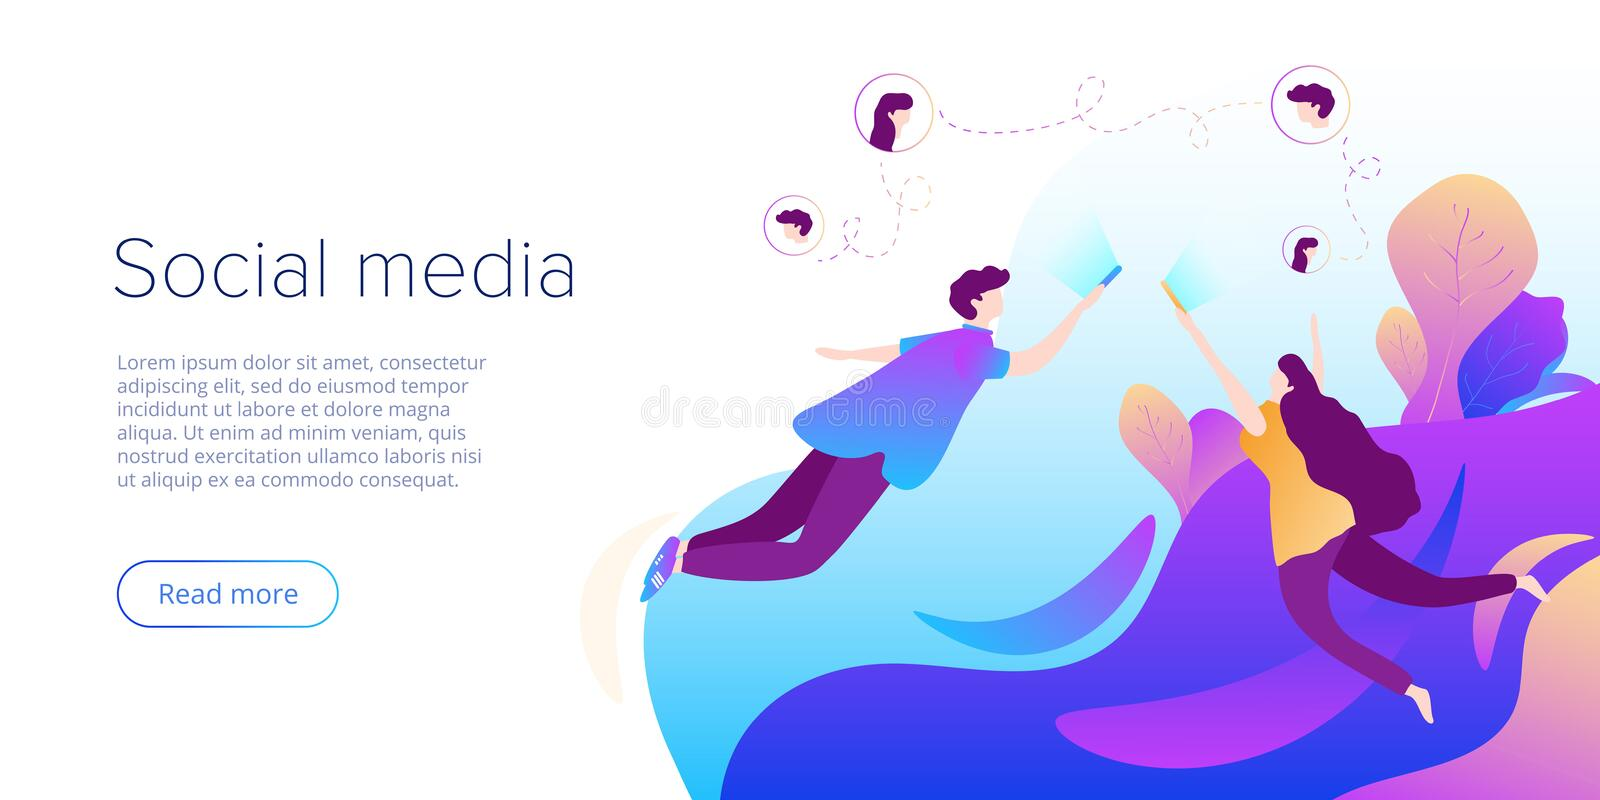 Social media chat concept in vector illustration. Teens using smartphones for virtual conversation, sharing or writing comments. Creative website layout or stock illustration